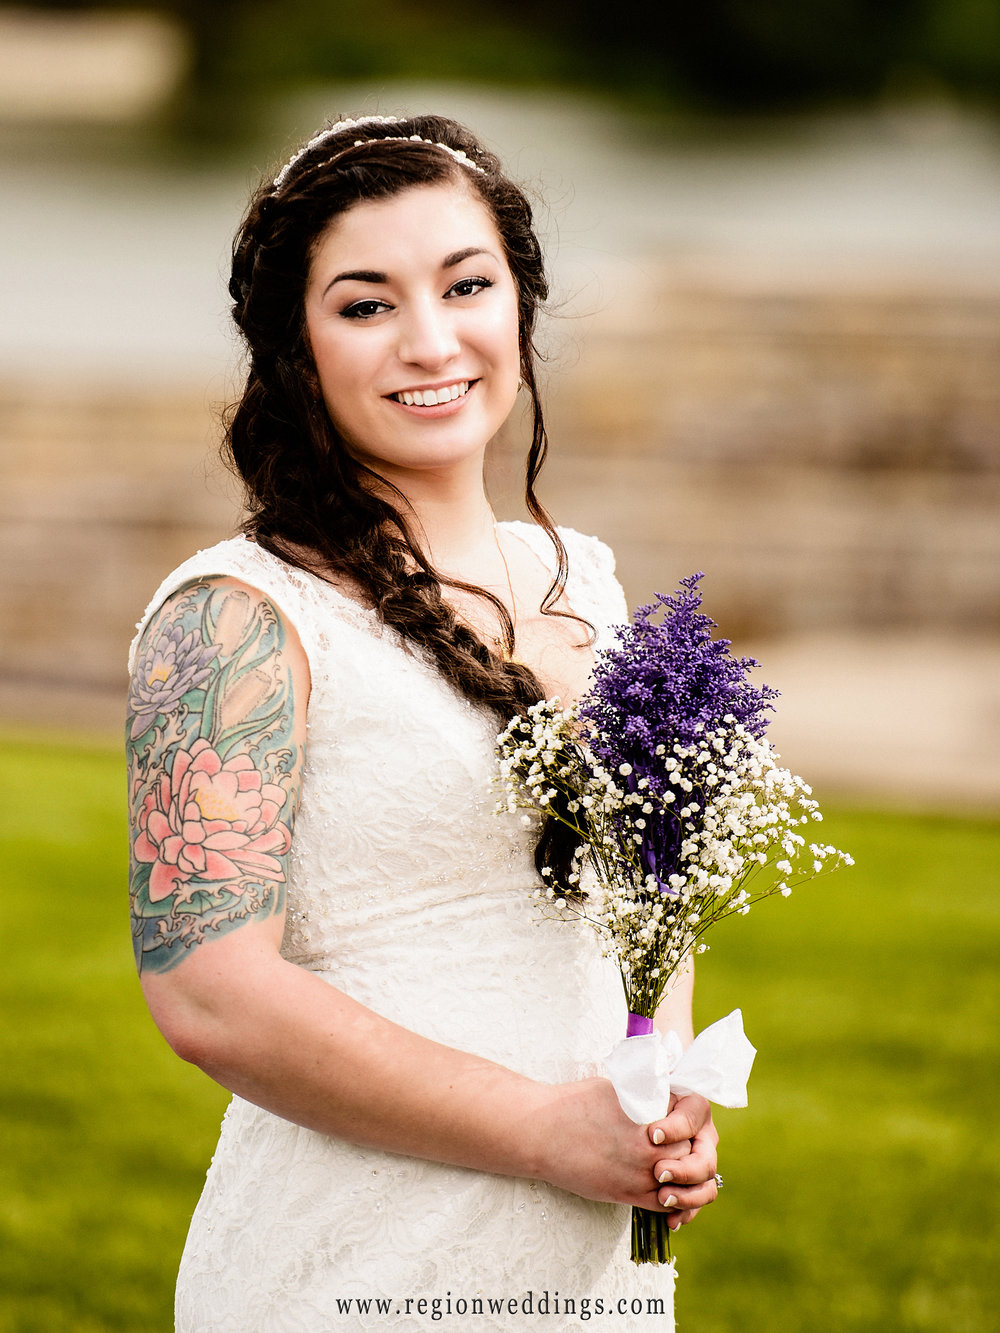 The beautiful bride and her purple flowers.